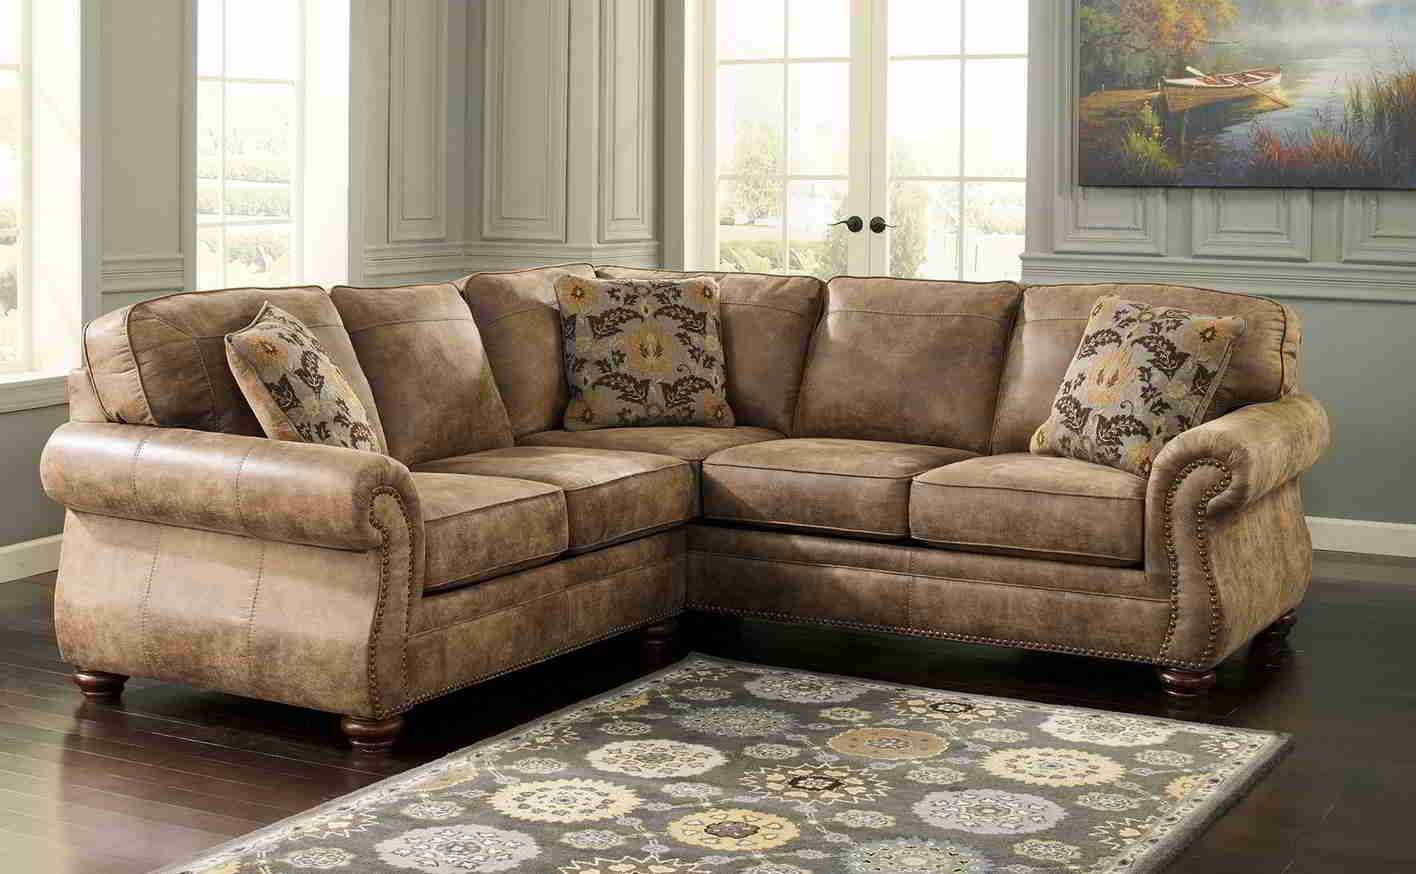 Custom Sofas Nyc – Thesofa pertaining to Custom Sofas Nyc (Image 16 of 30)